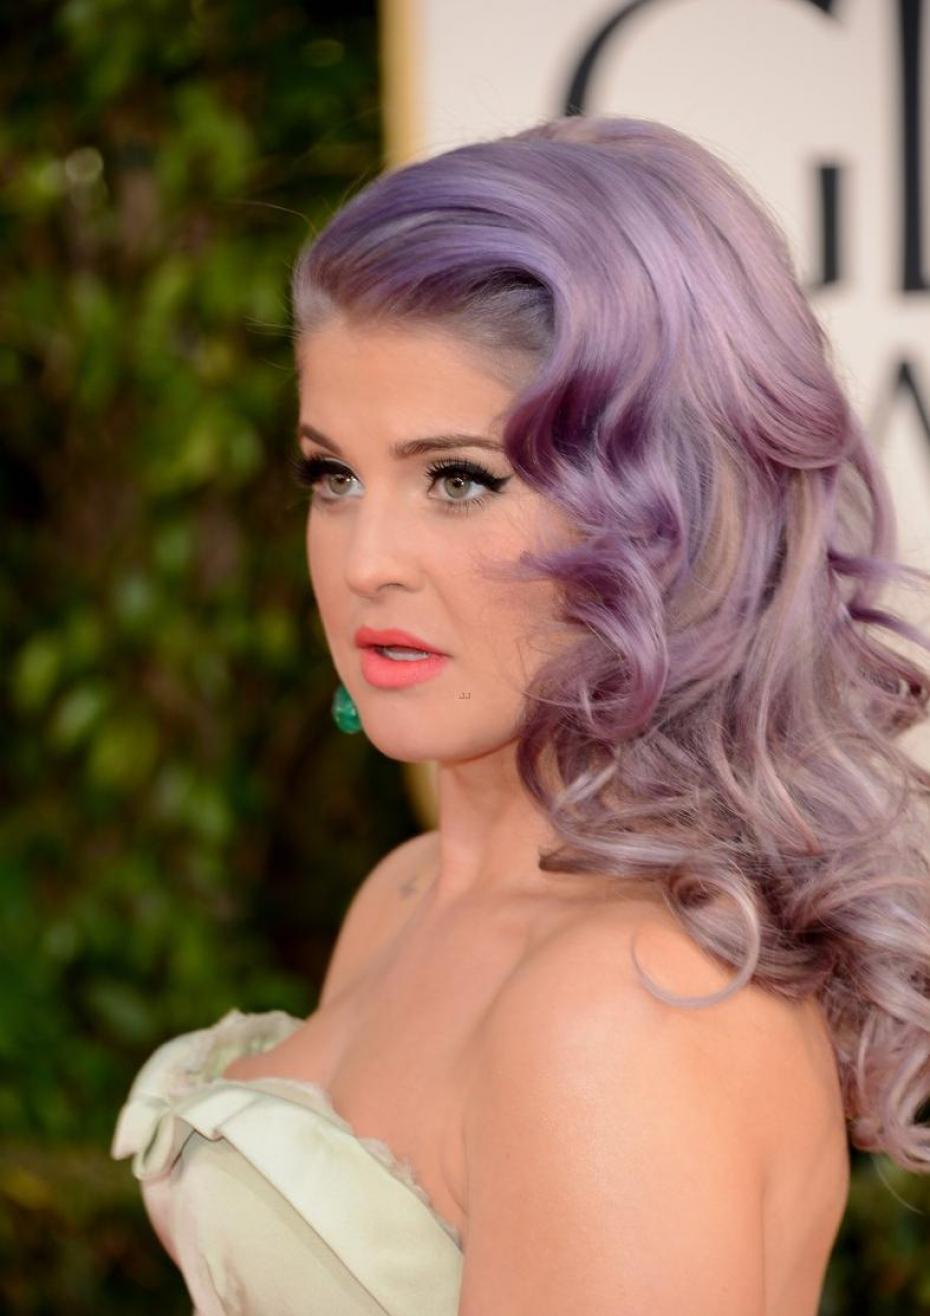 Just a fad? We sure hope not - Kelly Osbourne is here to stay and we hope her hair is too!